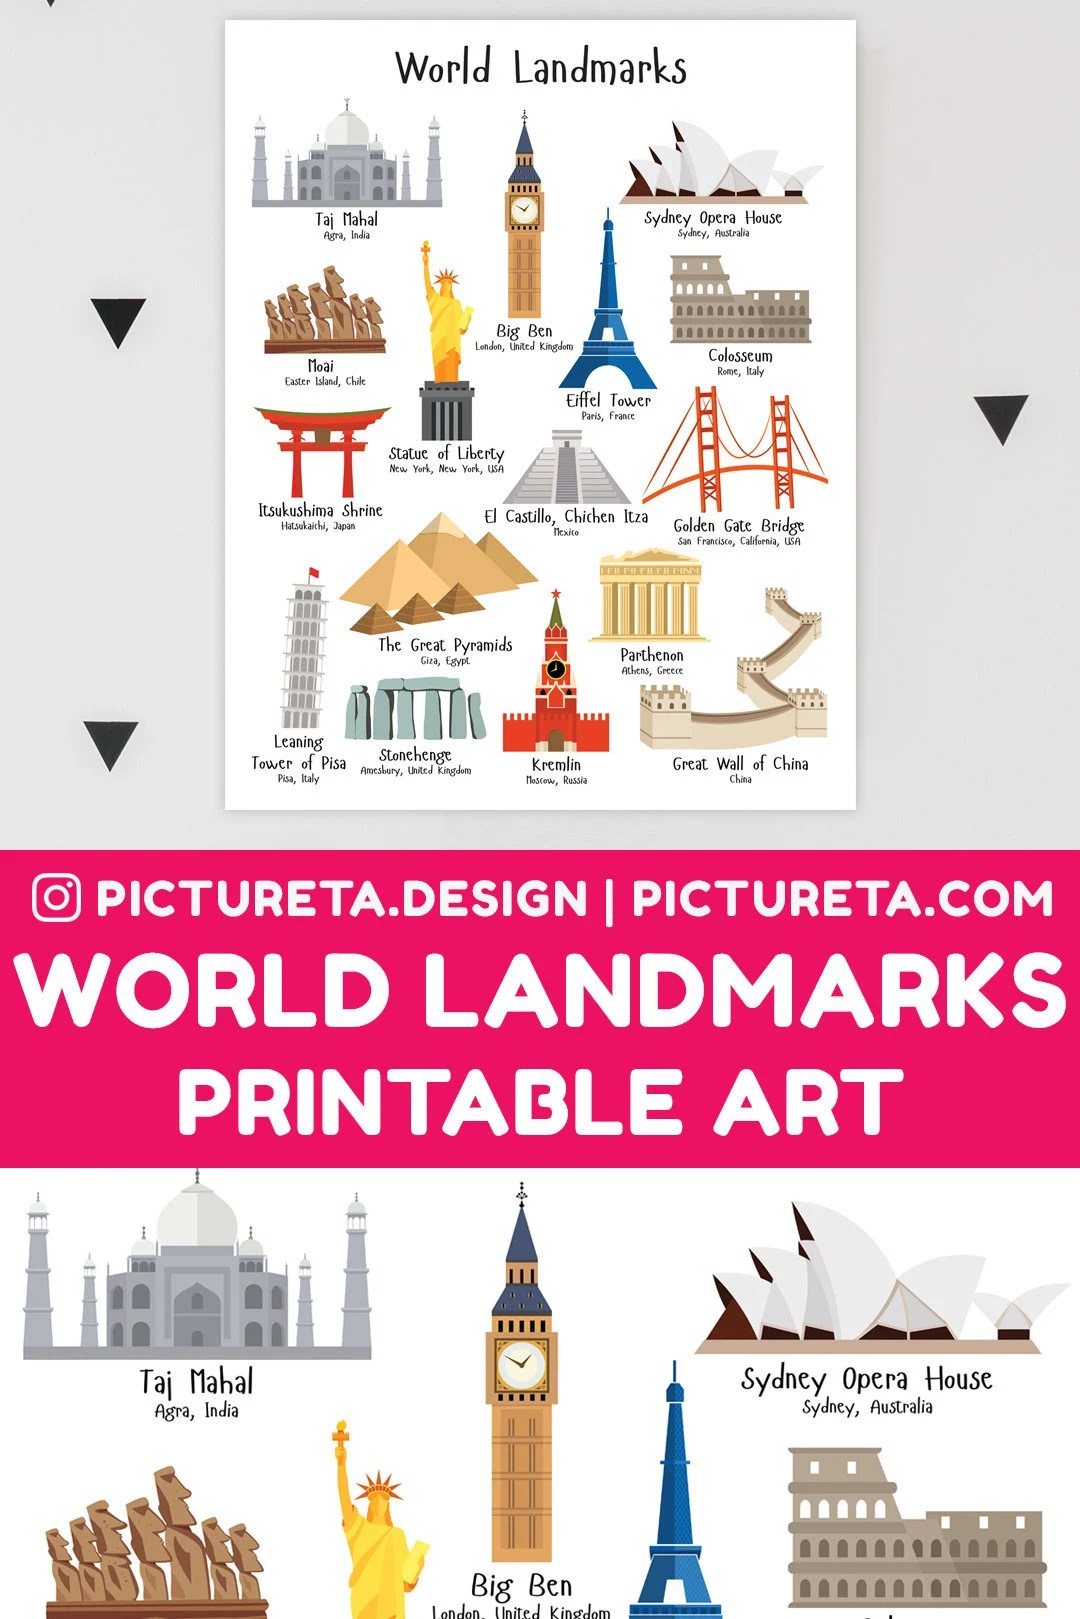 Printable Art Points De Repere Pepiniere Imprimables